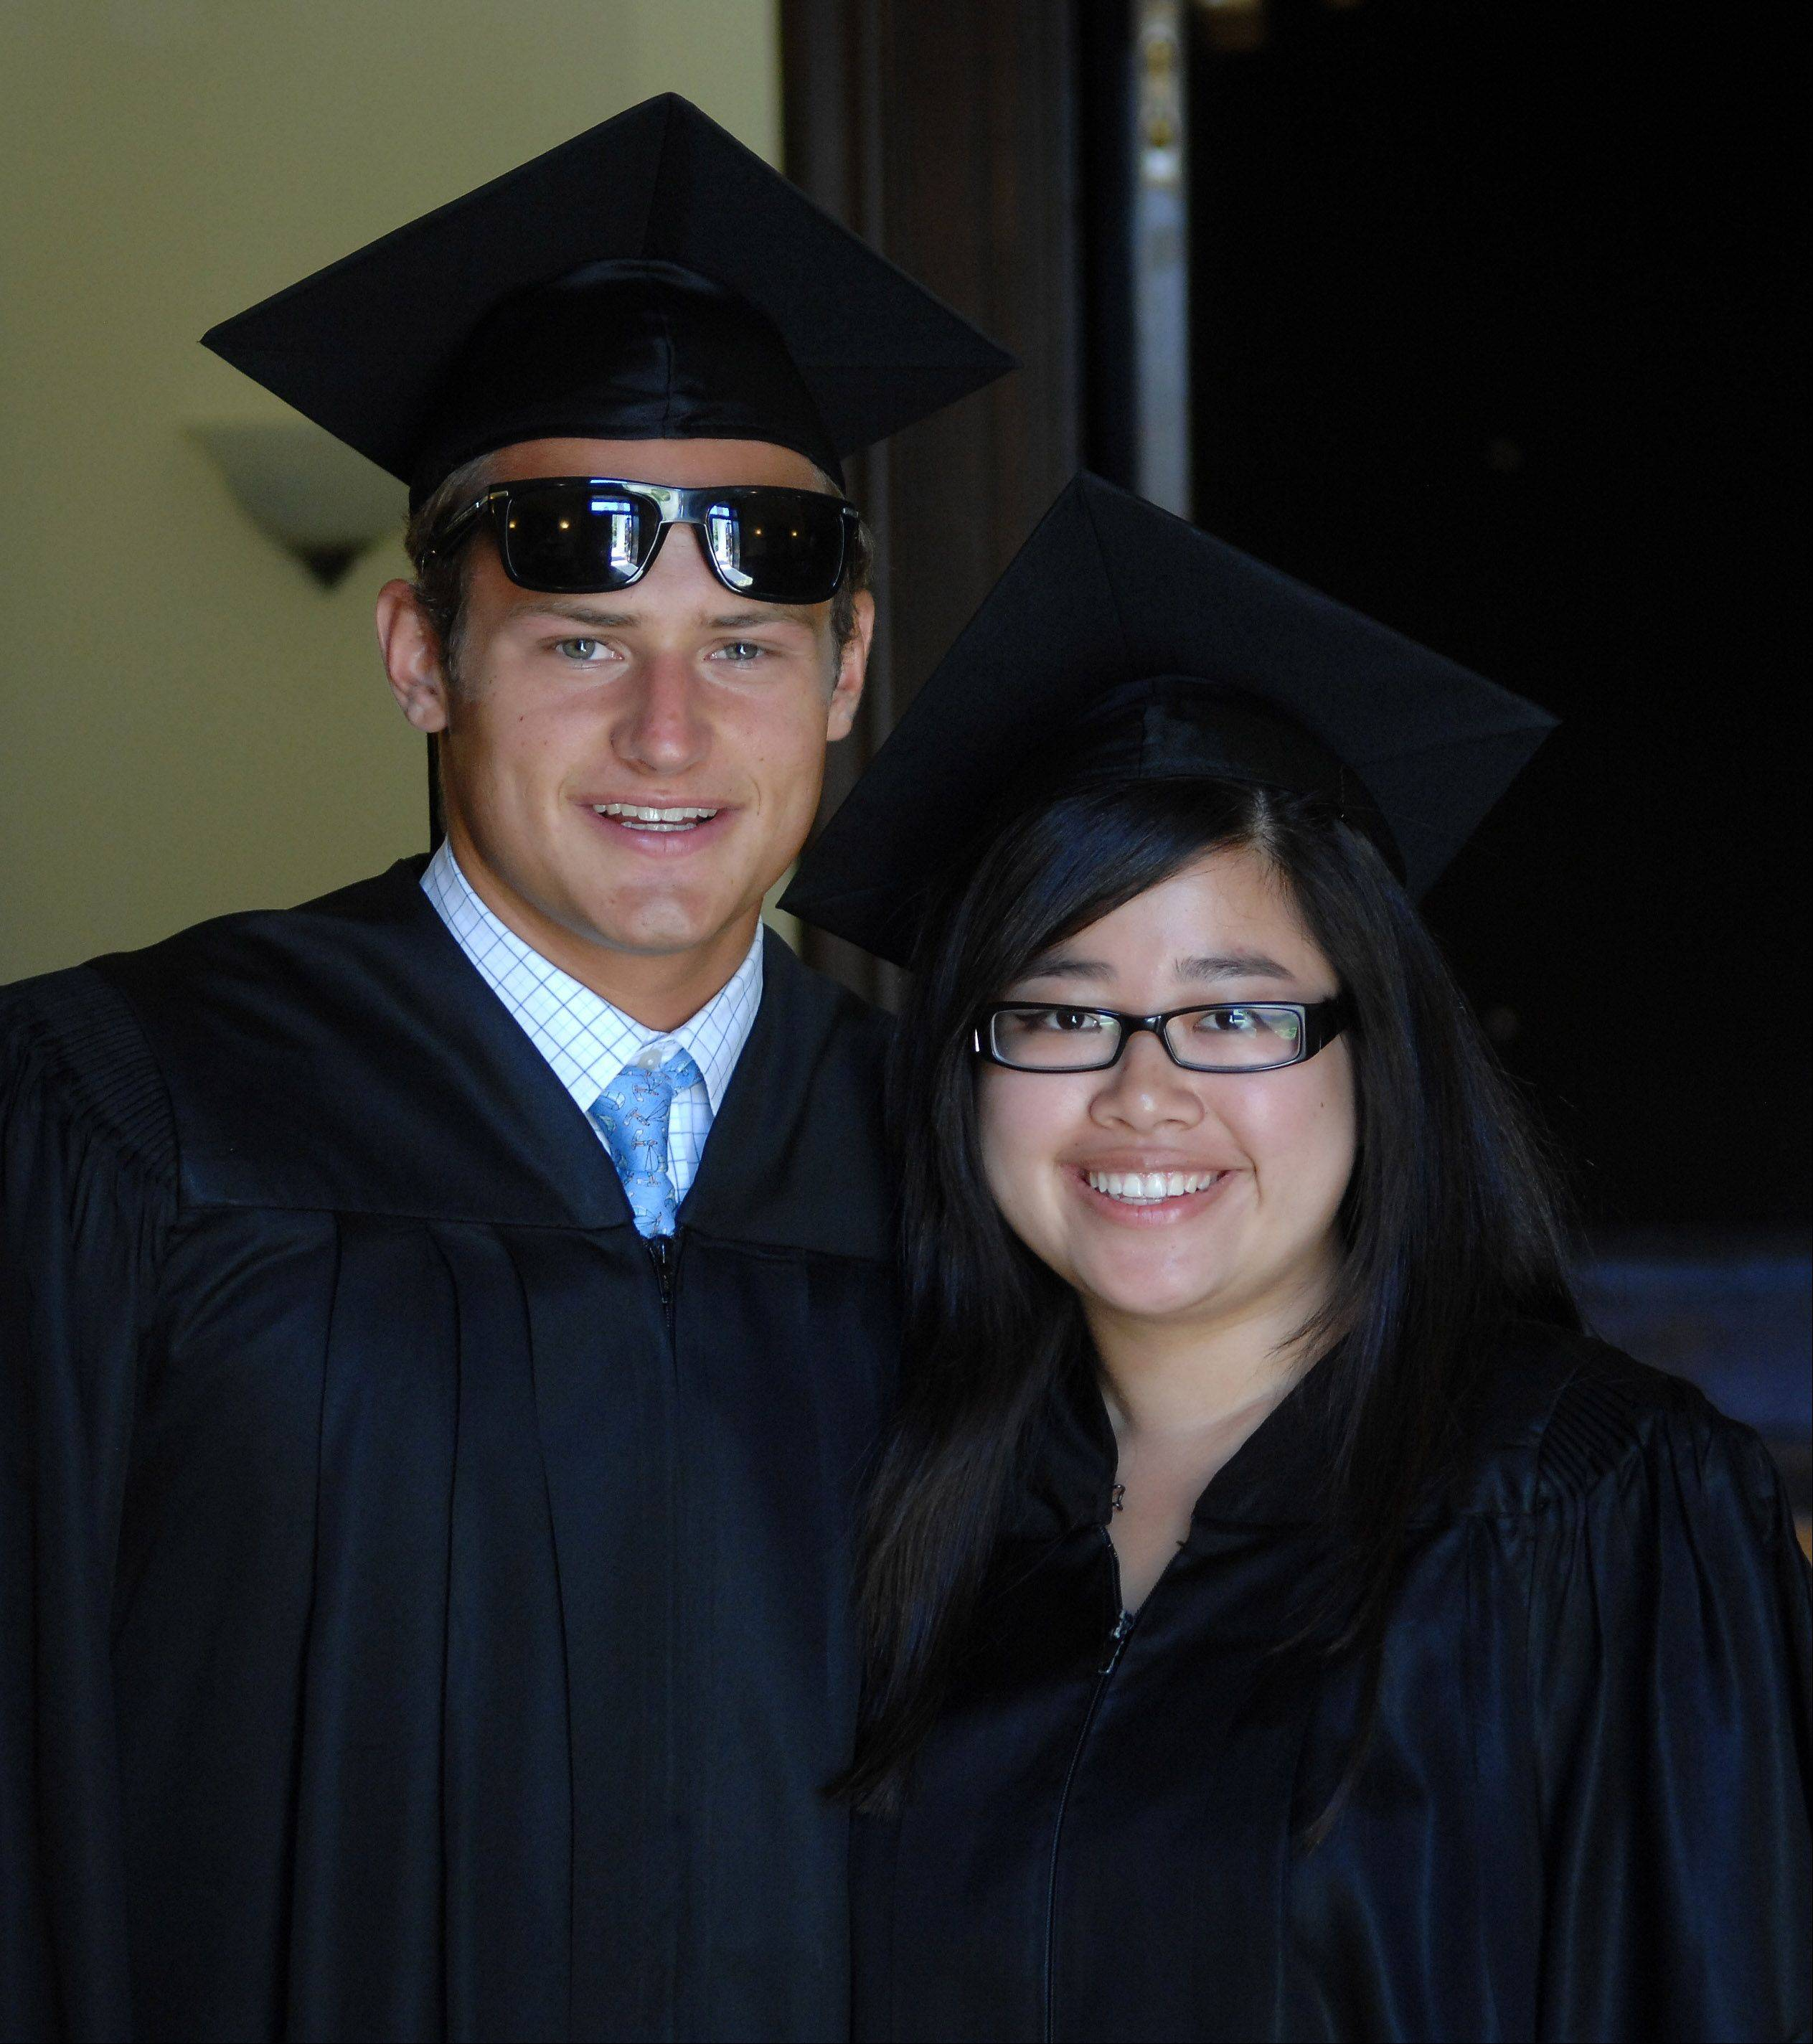 Images from the Elgin Academy graduation ceremony Saturday, June 2, 2012.